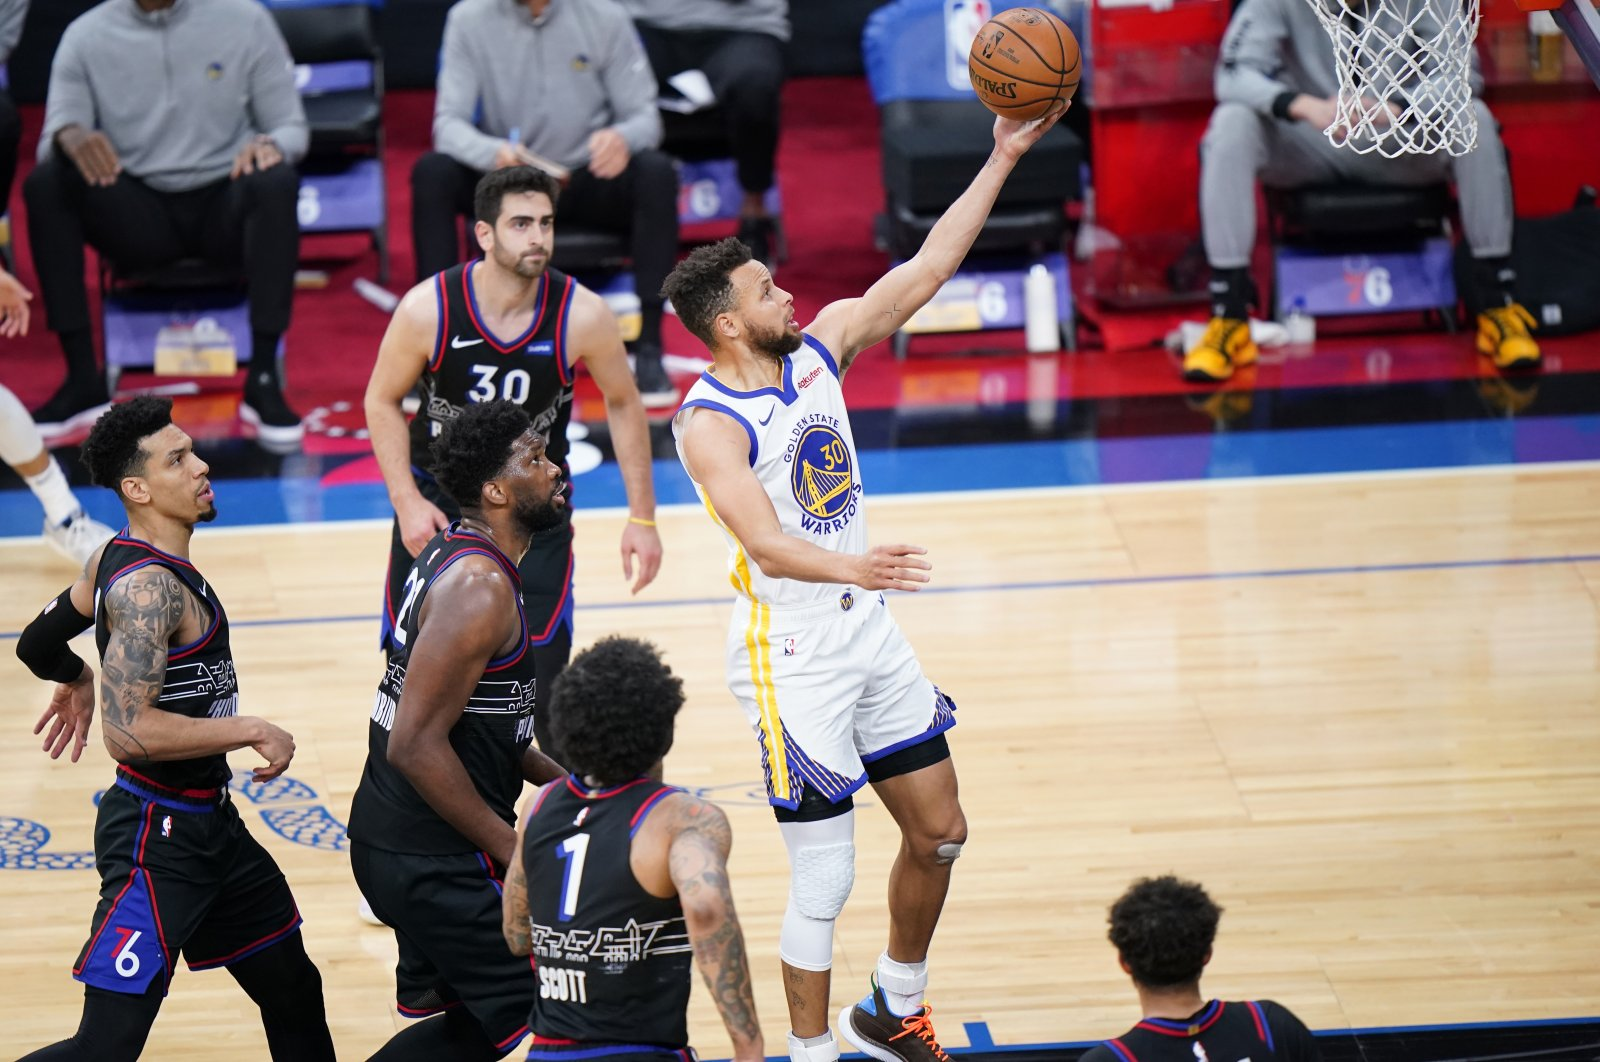 Golden State Warriors' Stephen Curry (R) goes for a shot during the first half of an NBA basketball game against the Philadelphia 76ers, Philadelphia, the U.S., April 19, 2021. (AP Photo)